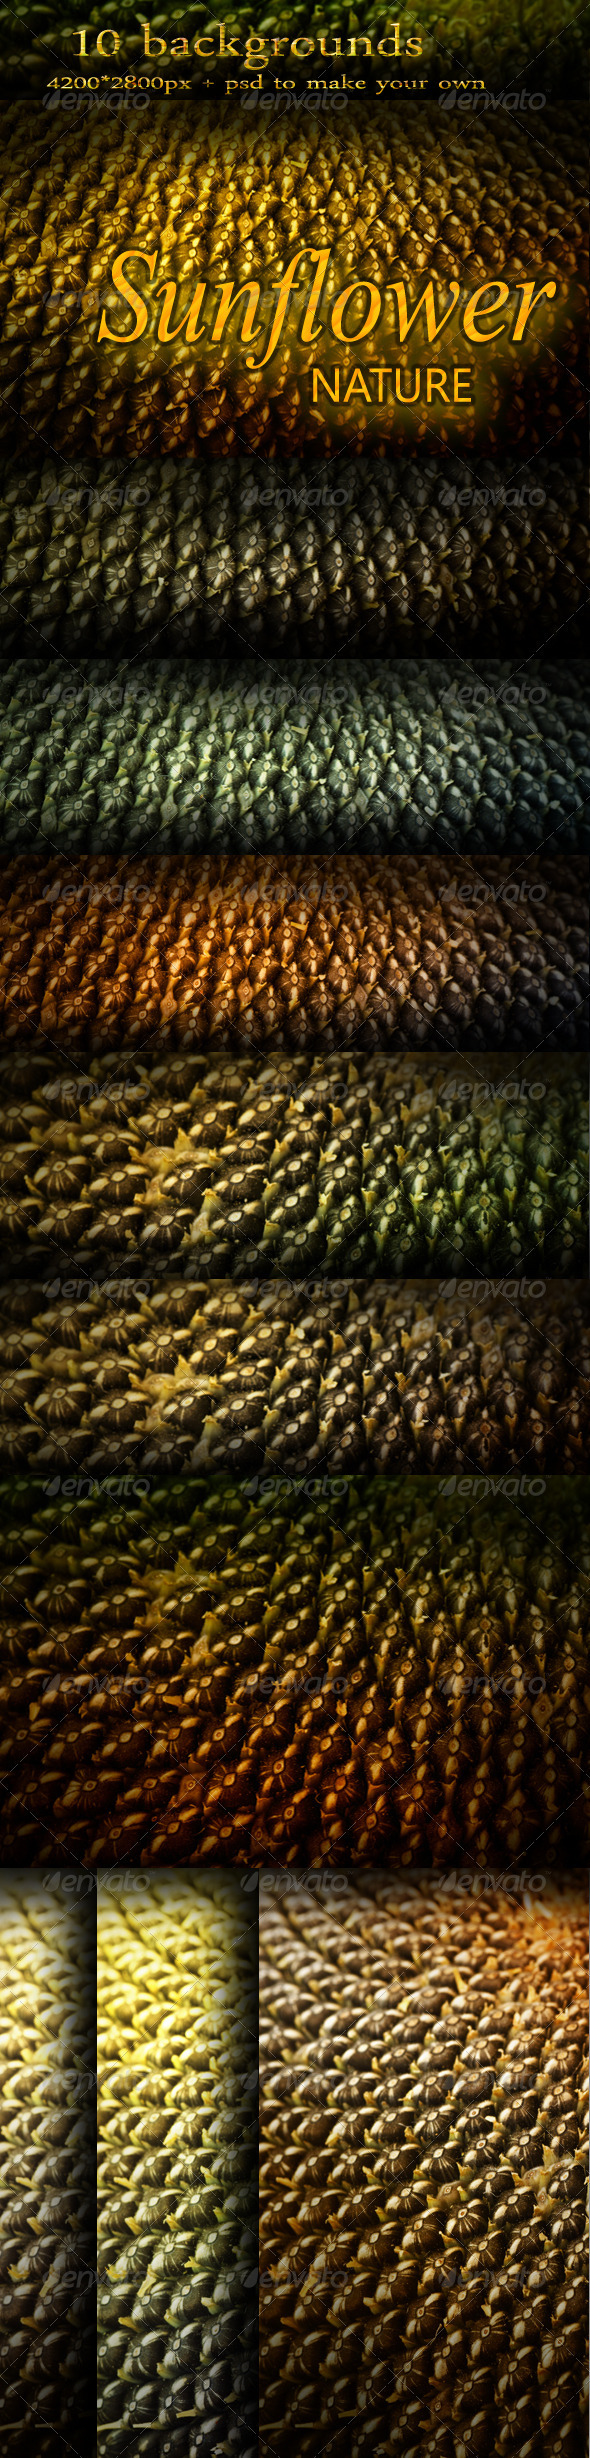 Abstract Nature Backgrounds with Sunflower Seeds - Nature Backgrounds